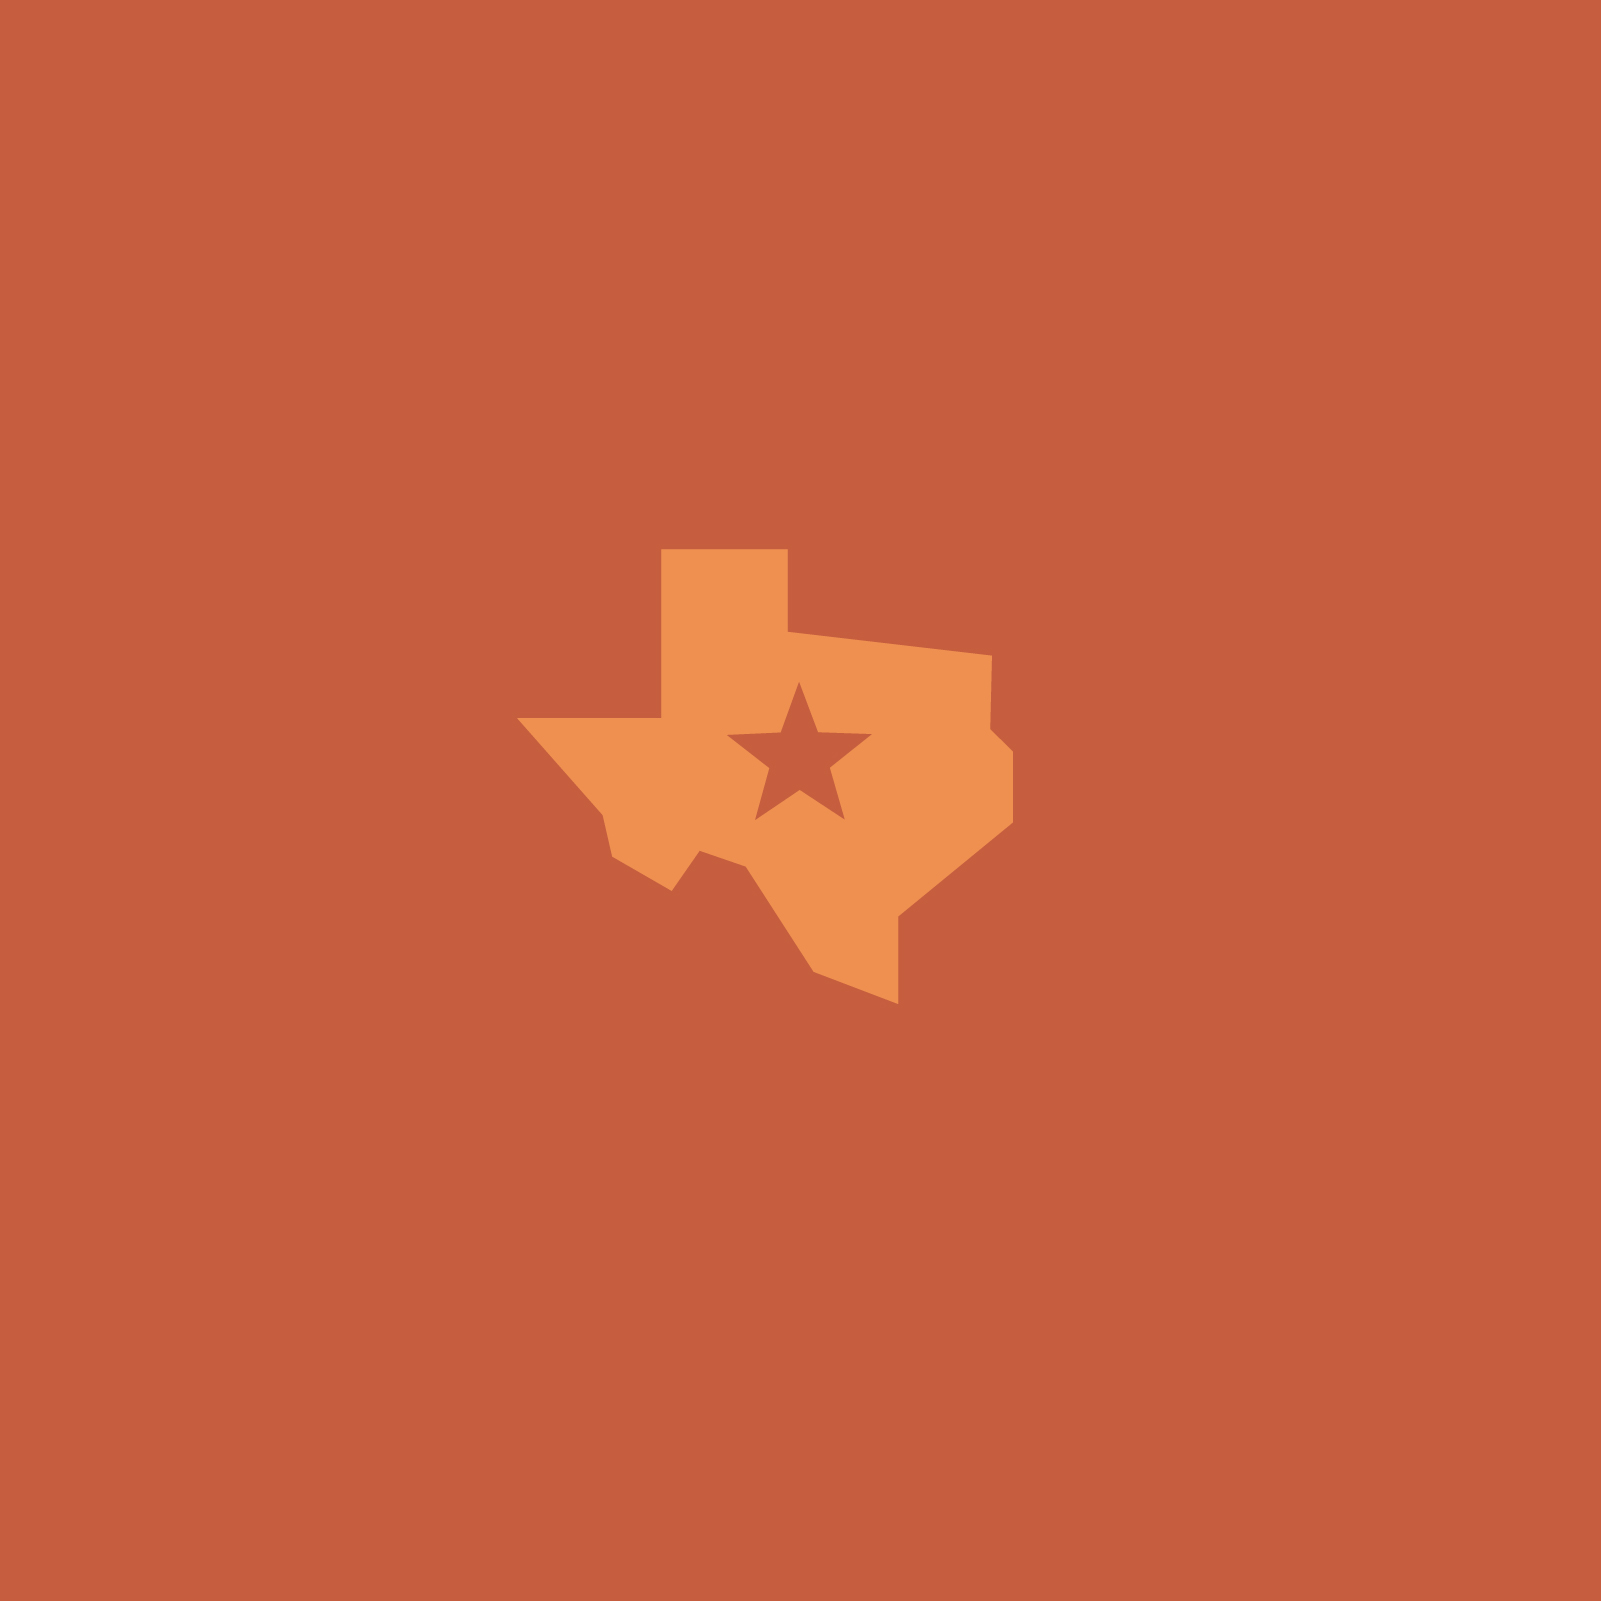 Are you looking for the best off-exchange health plans in Texas? Take a look at this guide to finding affordable, comprehensive coverage.